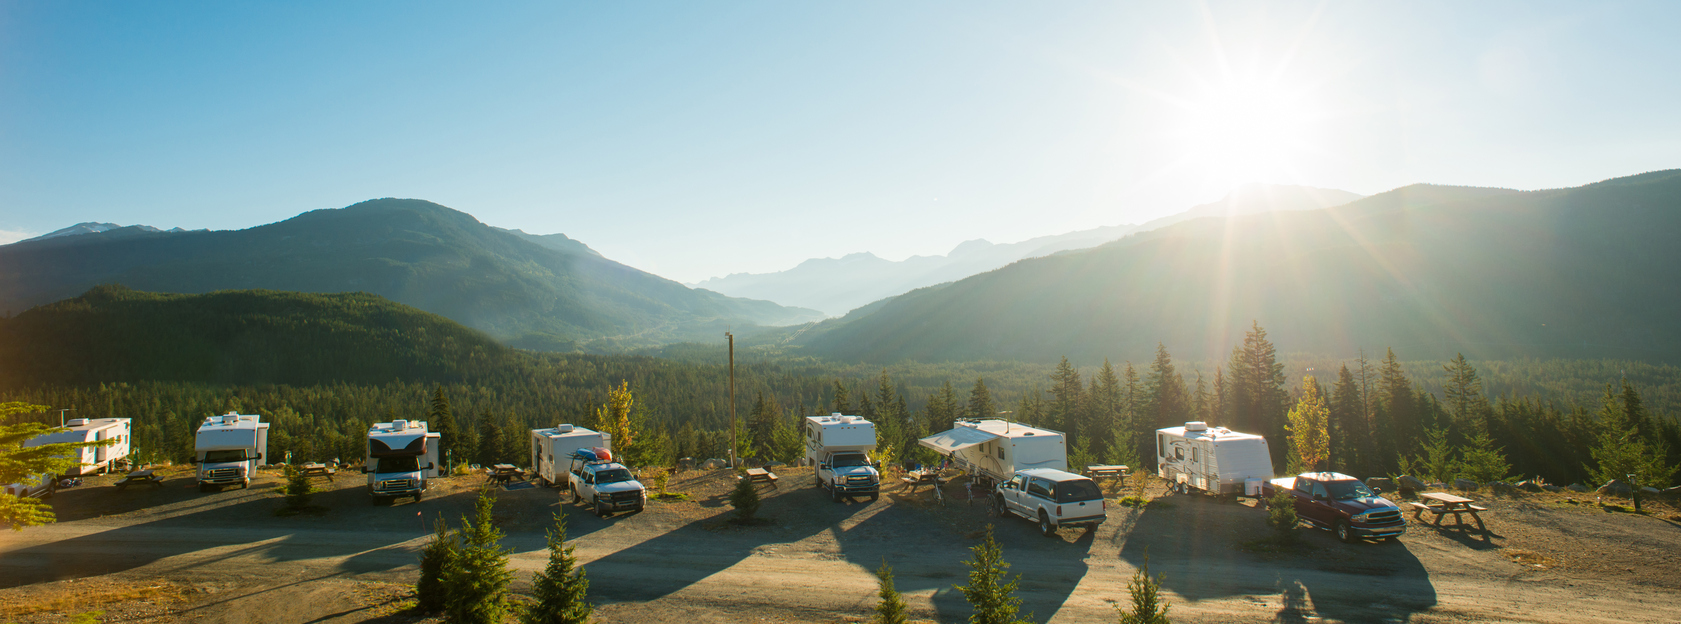 6 Canadian RV brands you should know